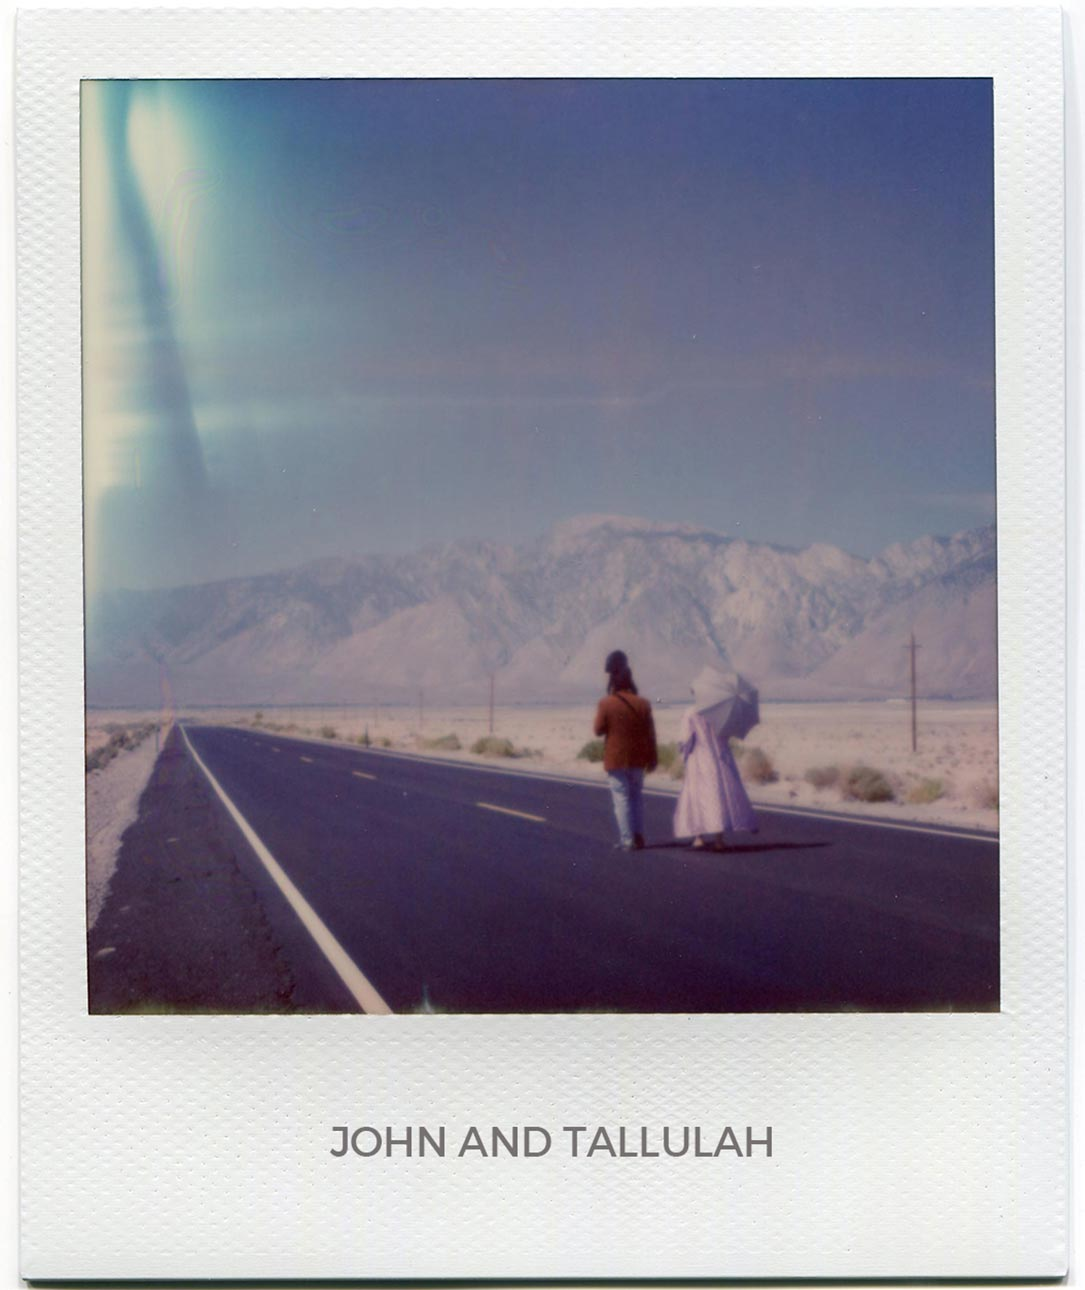 Florent Dudognon polaroid John and Tallulah